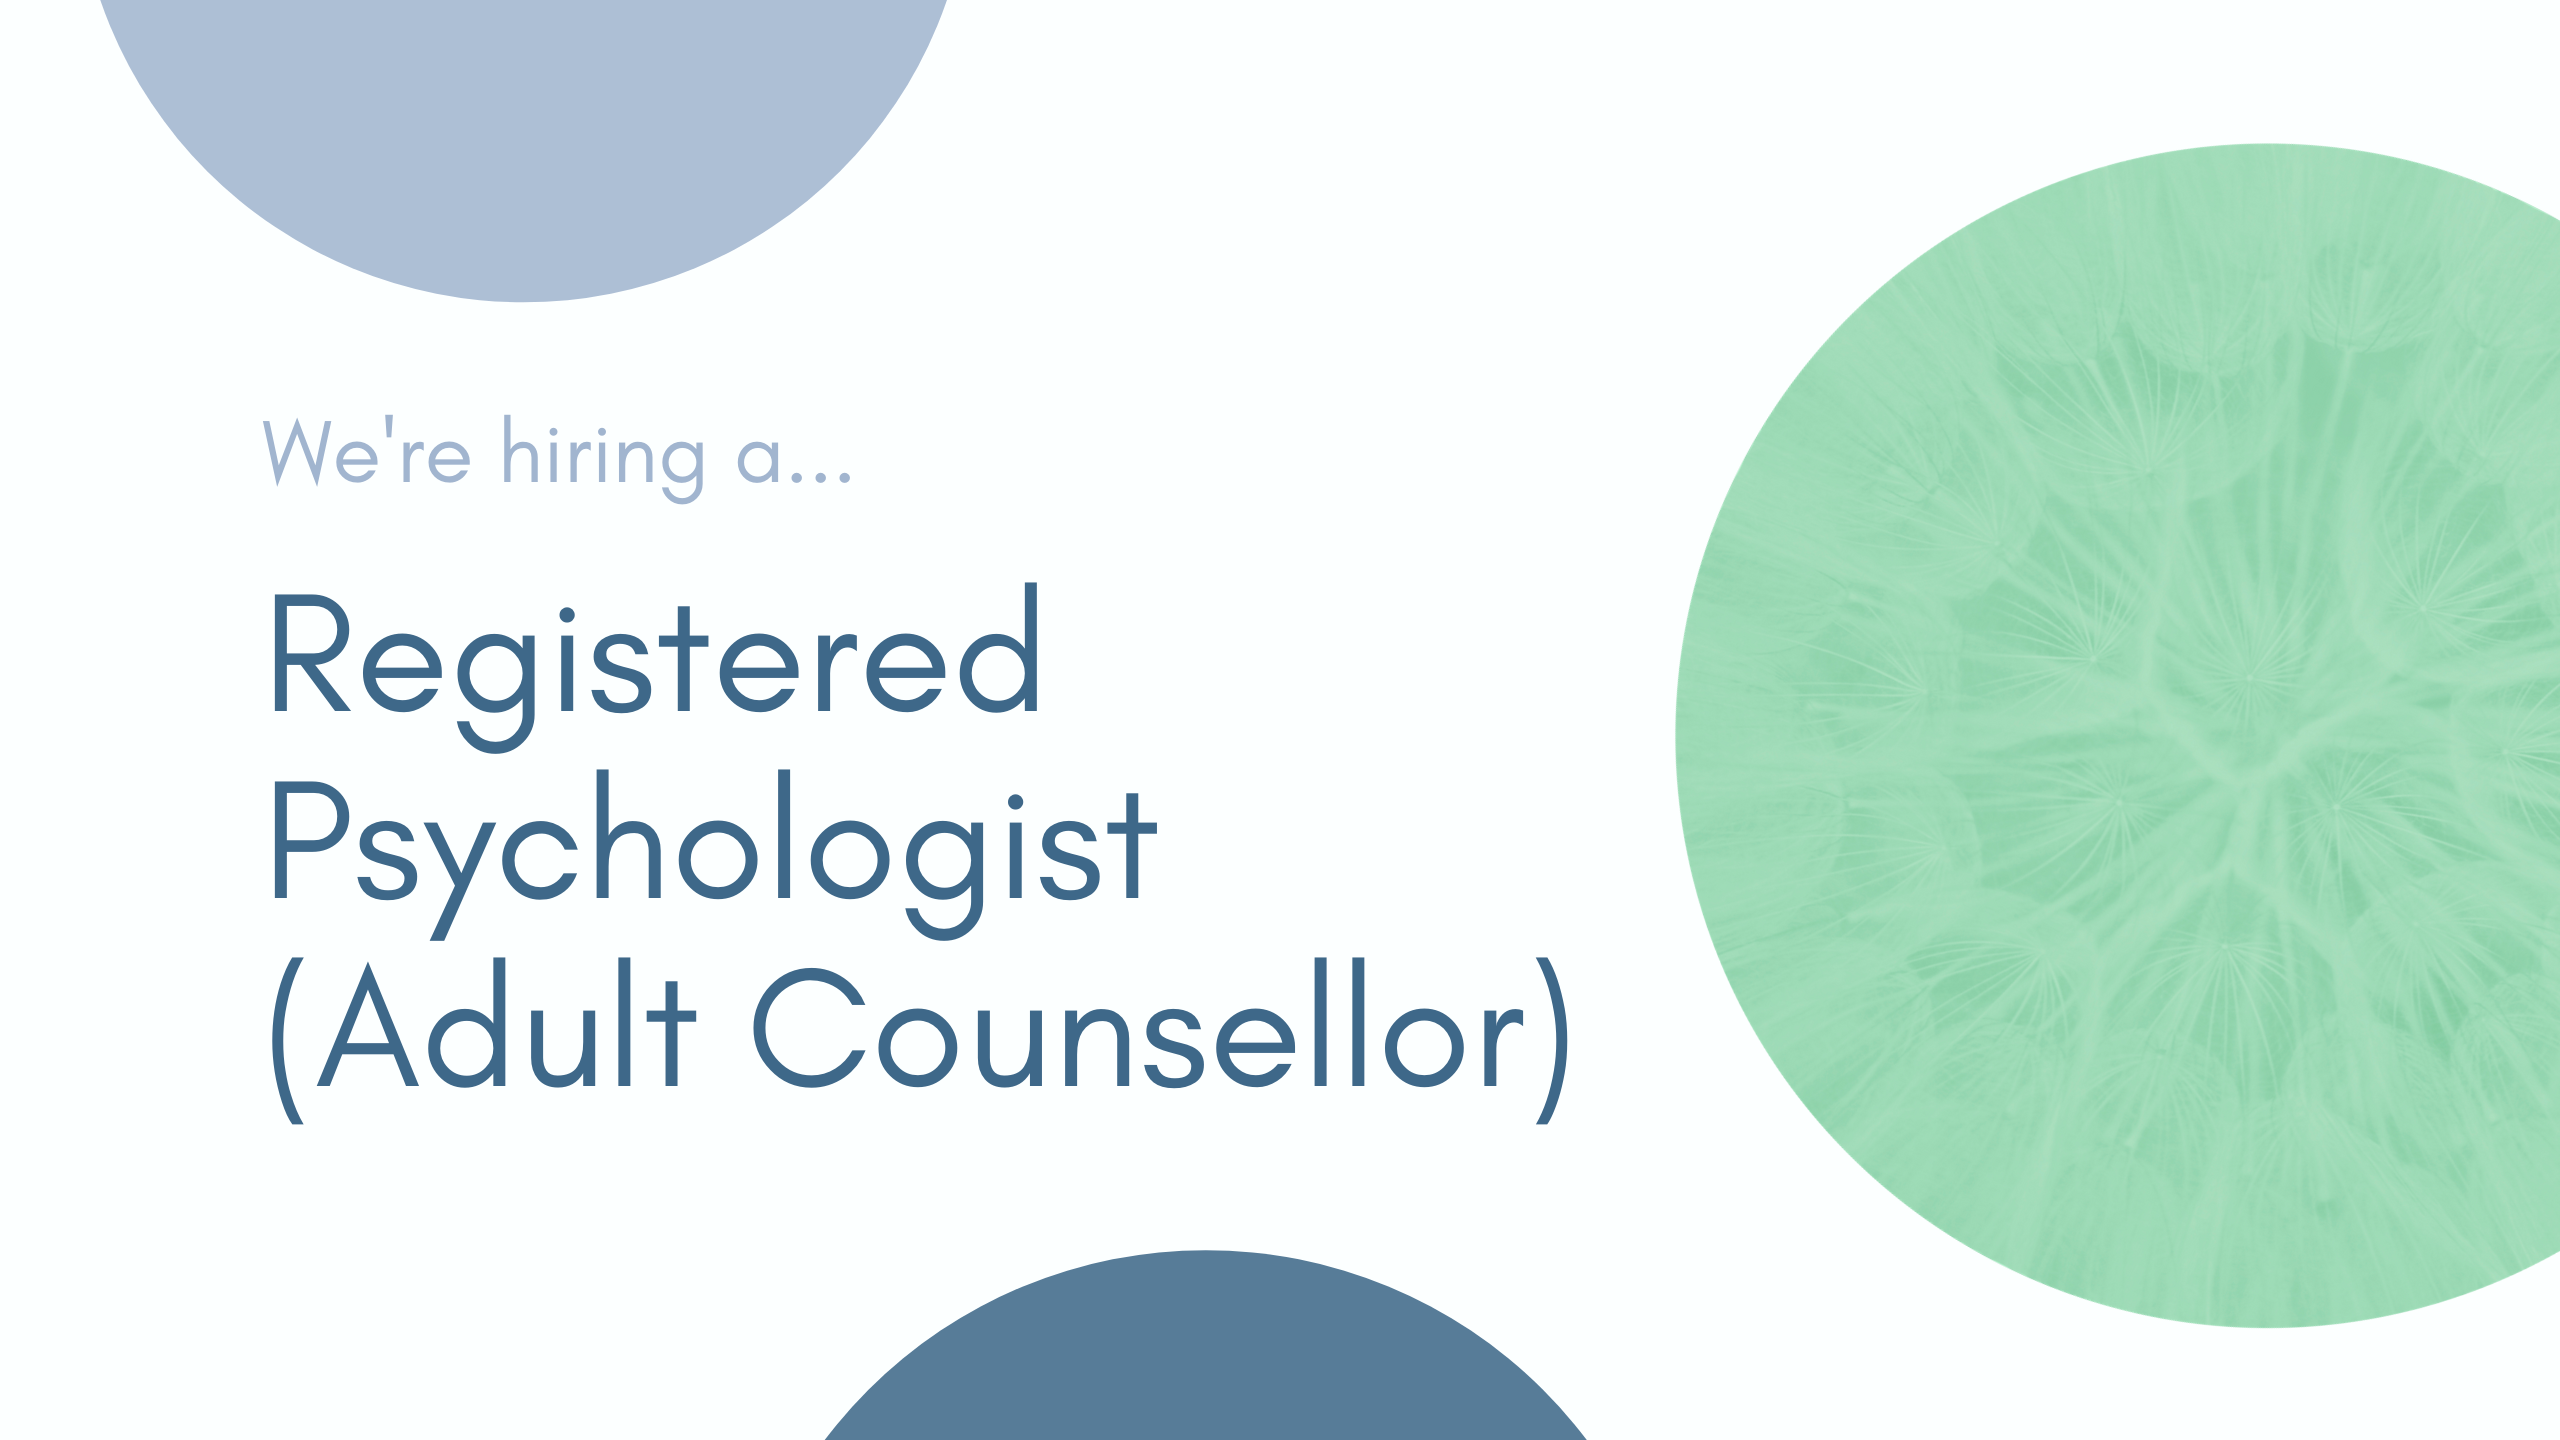 We're Hiring A Registered Psychologist (Adult Counsellor)